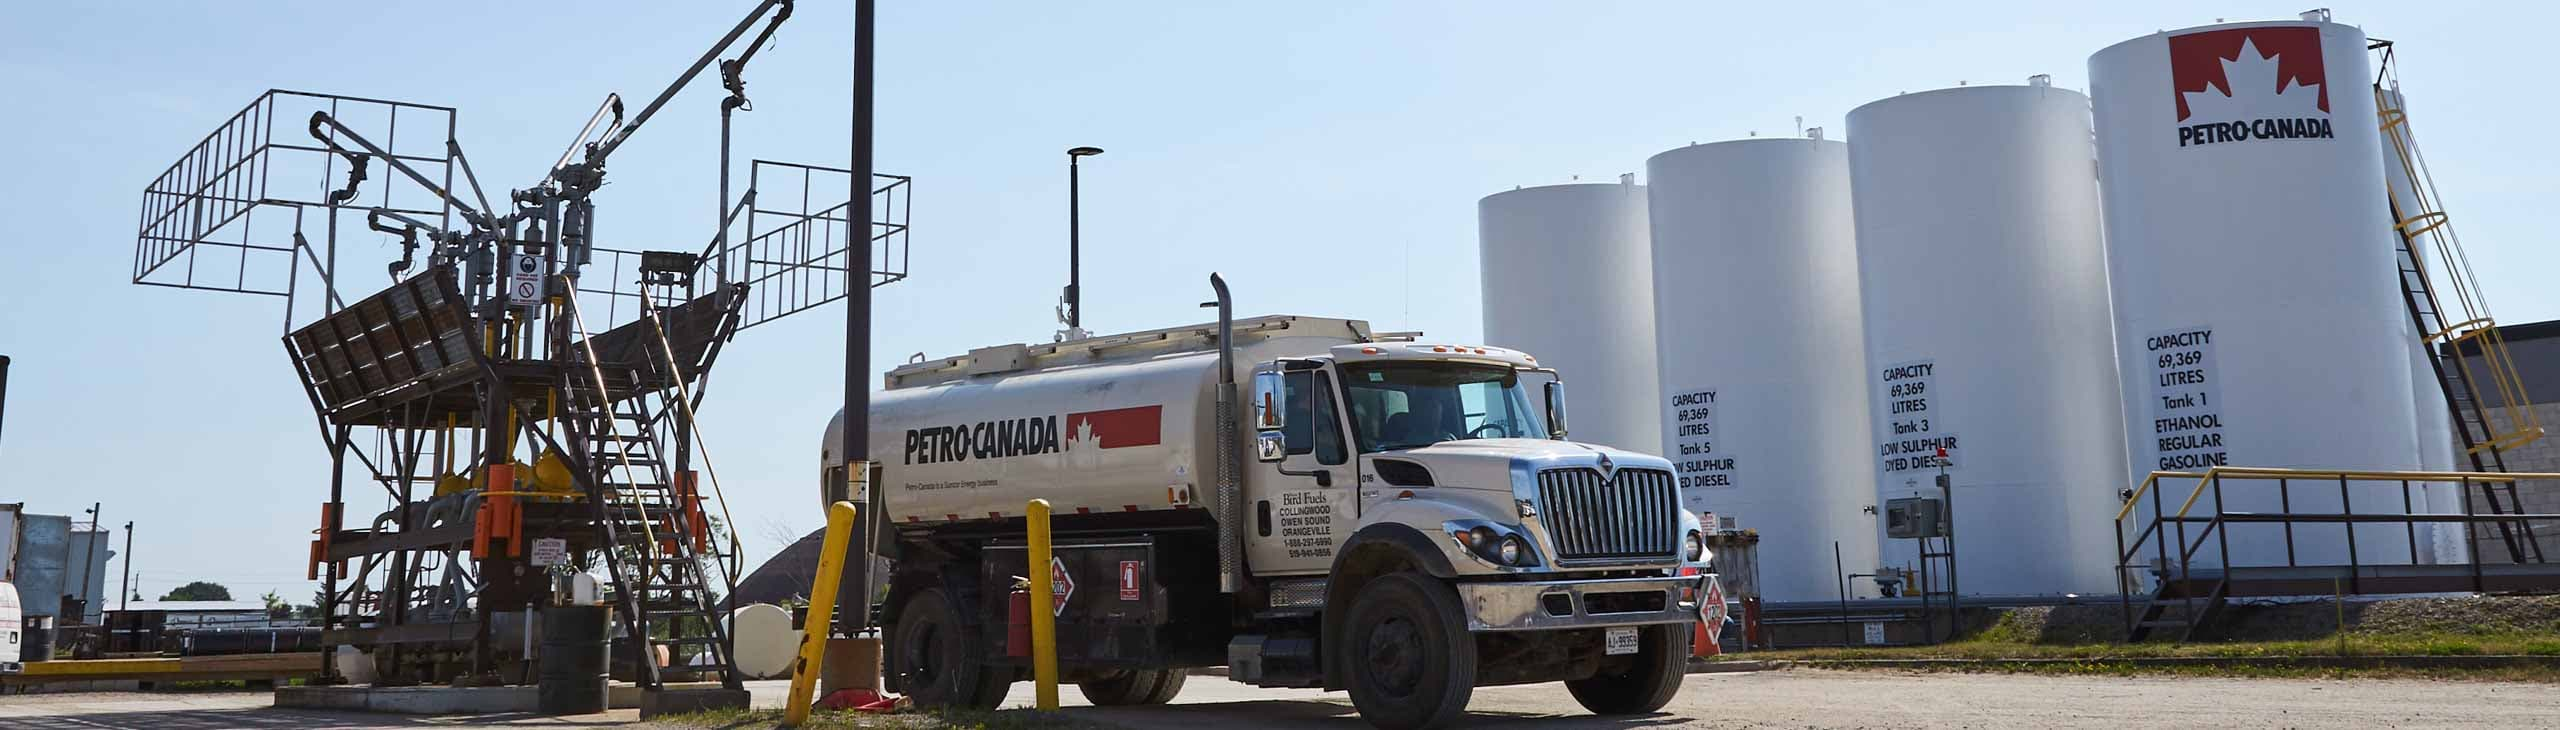 A Petro-Canada fuel truck next to a row of large fuel tanks.